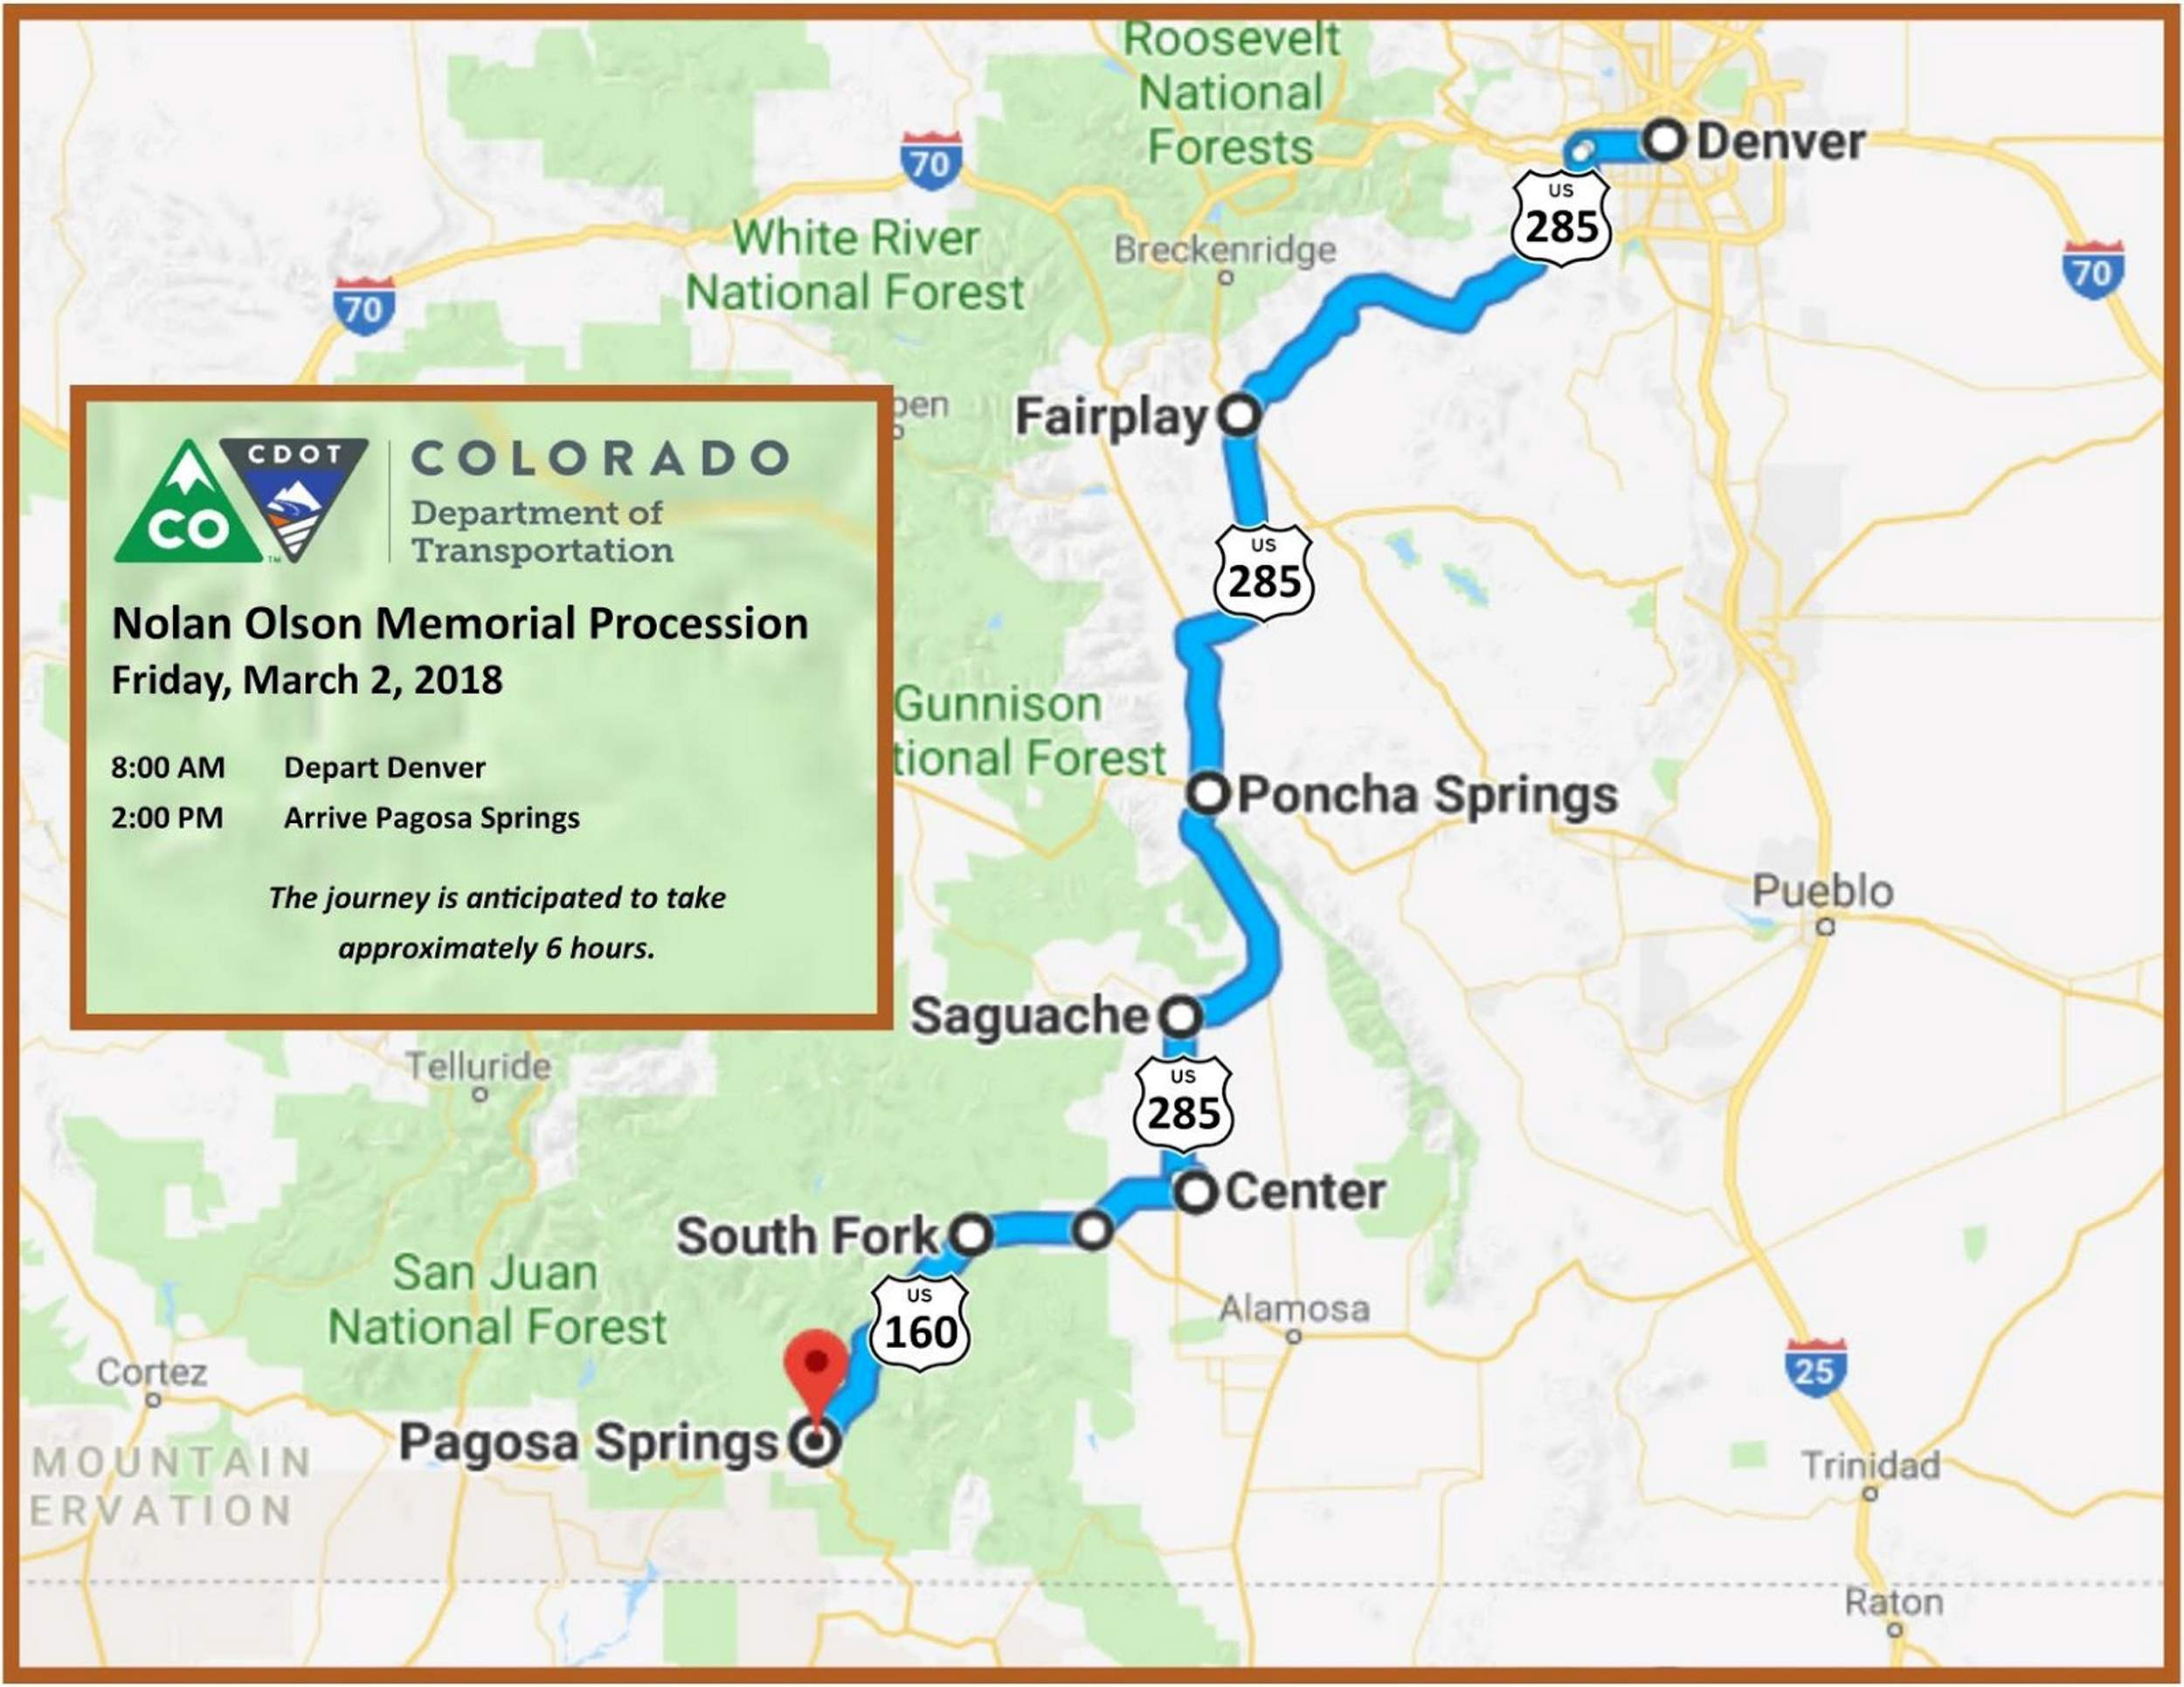 CDOT will carry worker\'s ashes from Denver to Pagosa Springs